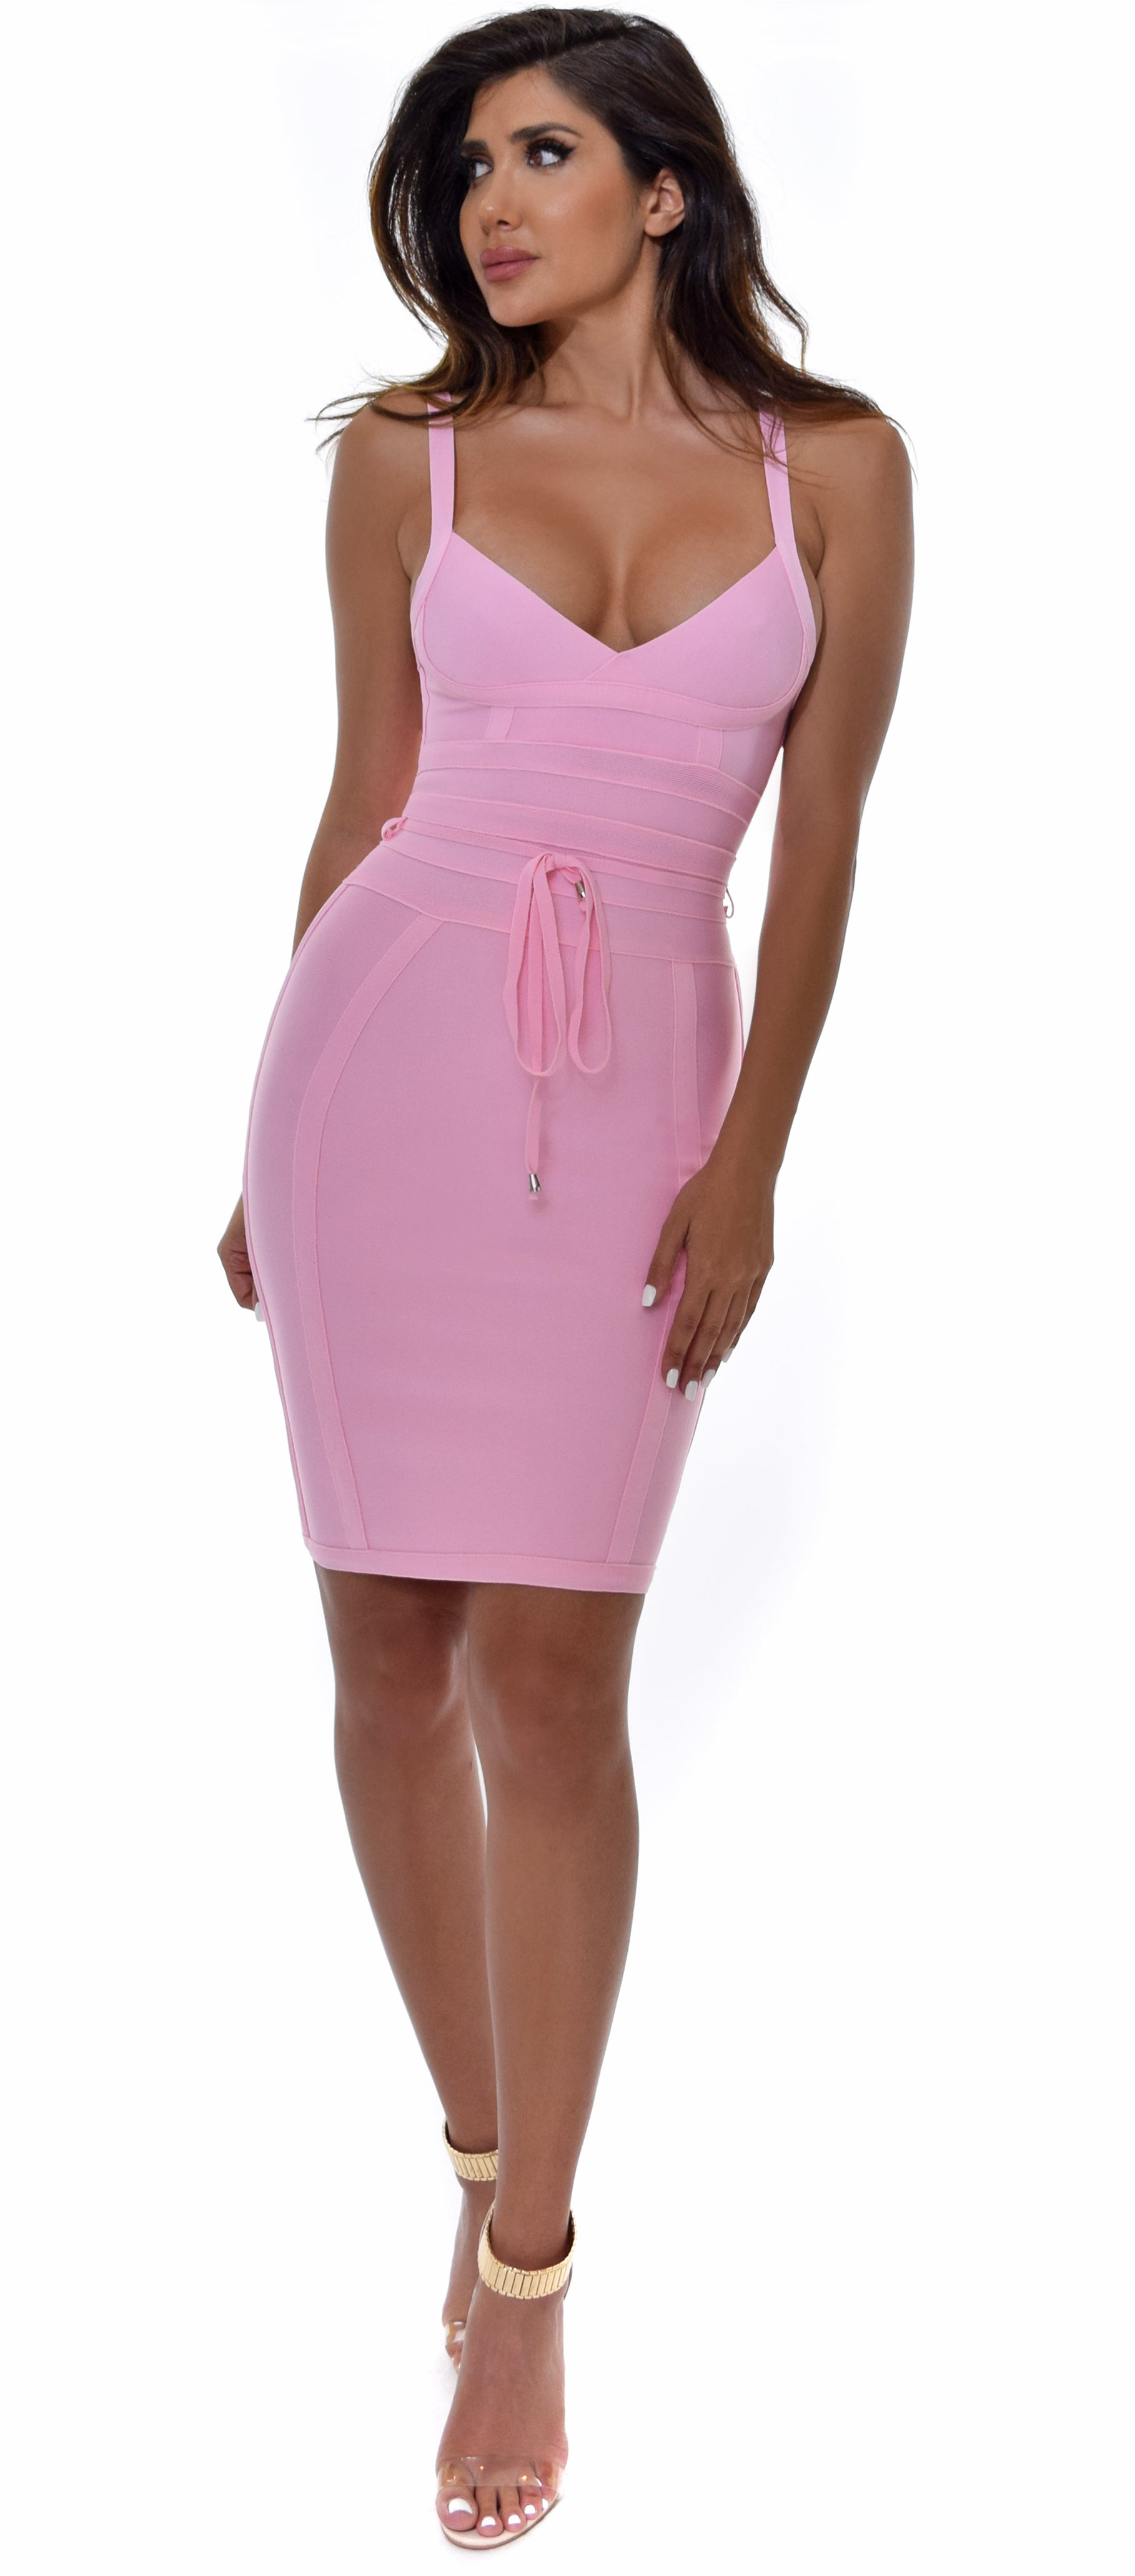 Lucila Pink Belted Bandage Dress